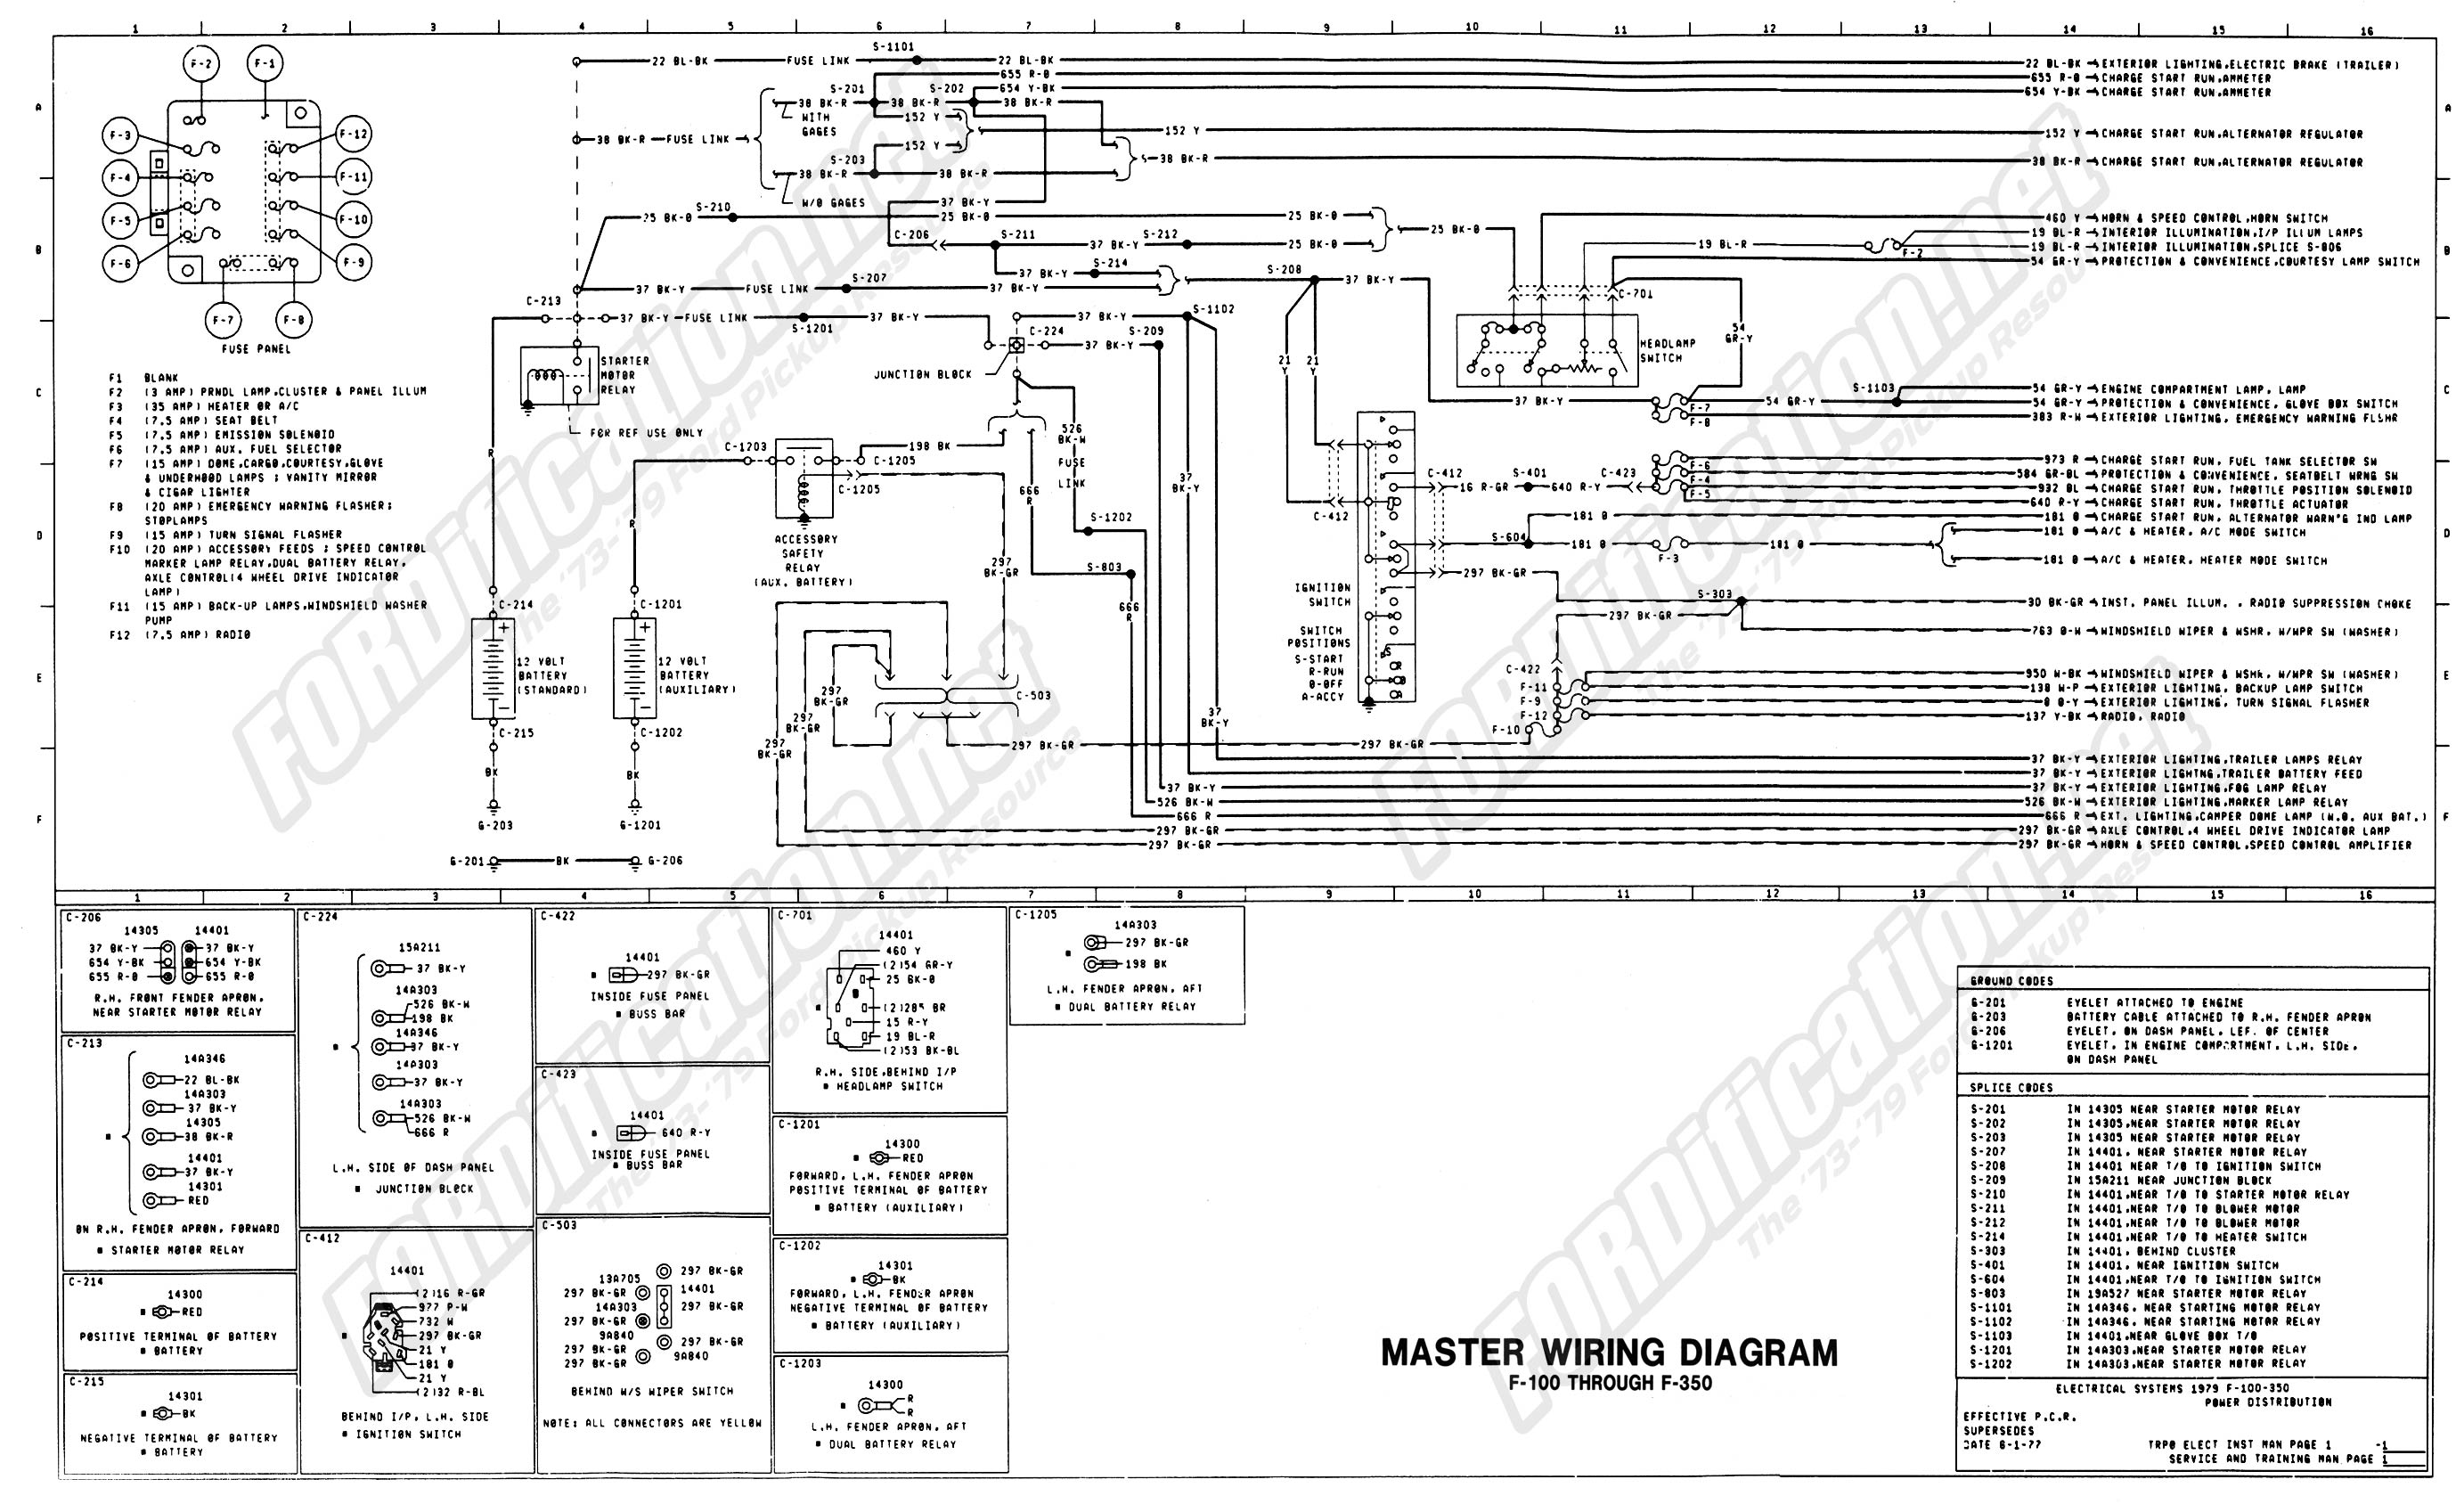 According to the Wiring Diagram Here:  http://fordification.net/tech/images...aster_1of9.jpg